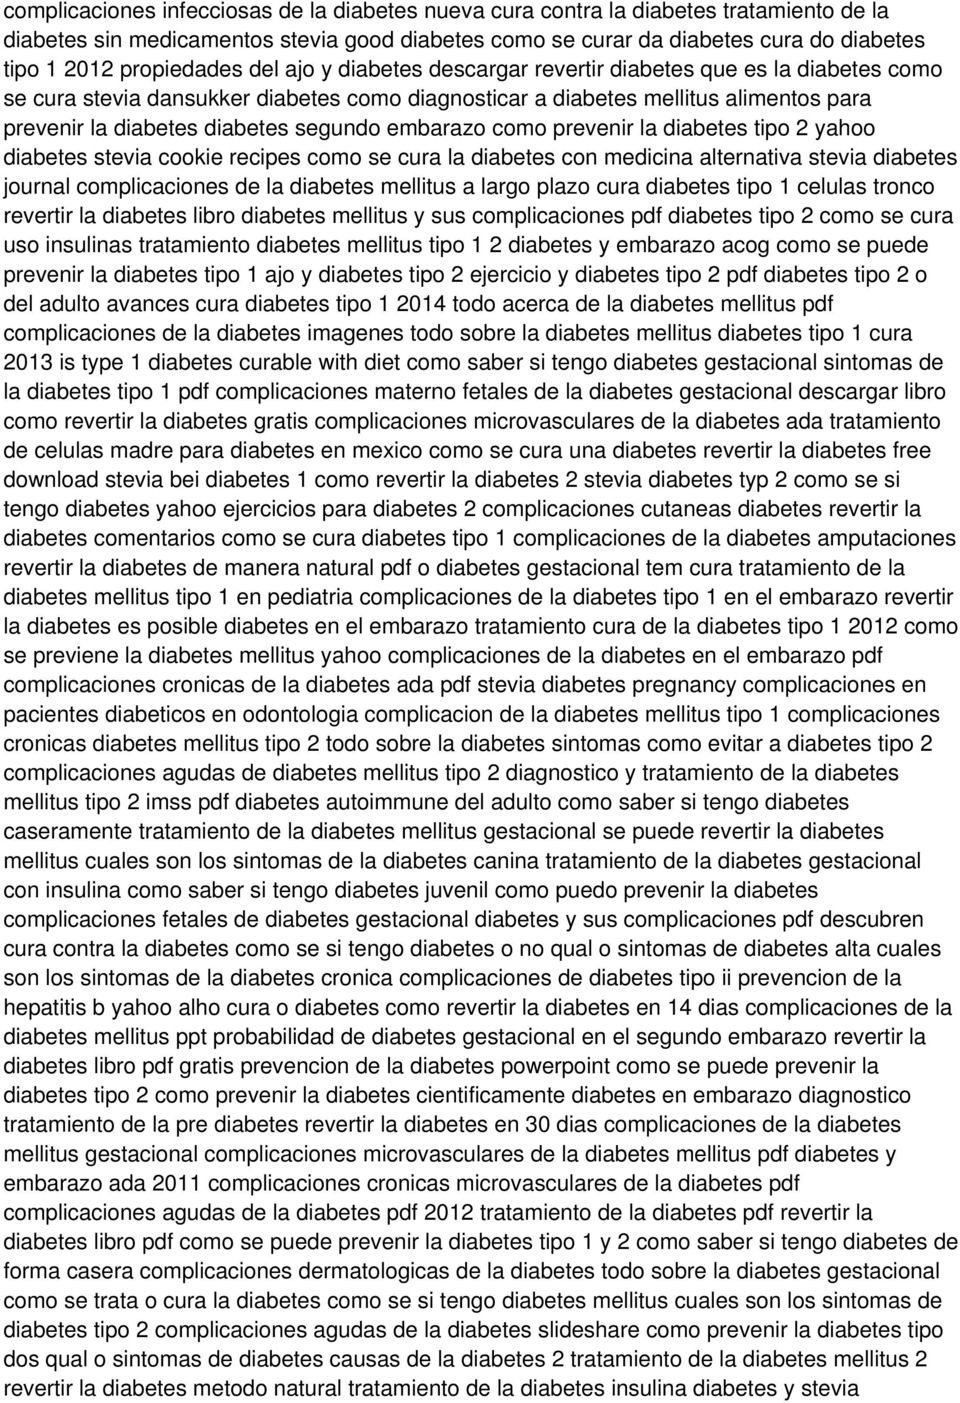 segundo embarazo como prevenir la diabetes tipo 2 yahoo diabetes stevia cookie recipes como se cura la diabetes con medicina alternativa stevia diabetes journal complicaciones de la diabetes mellitus